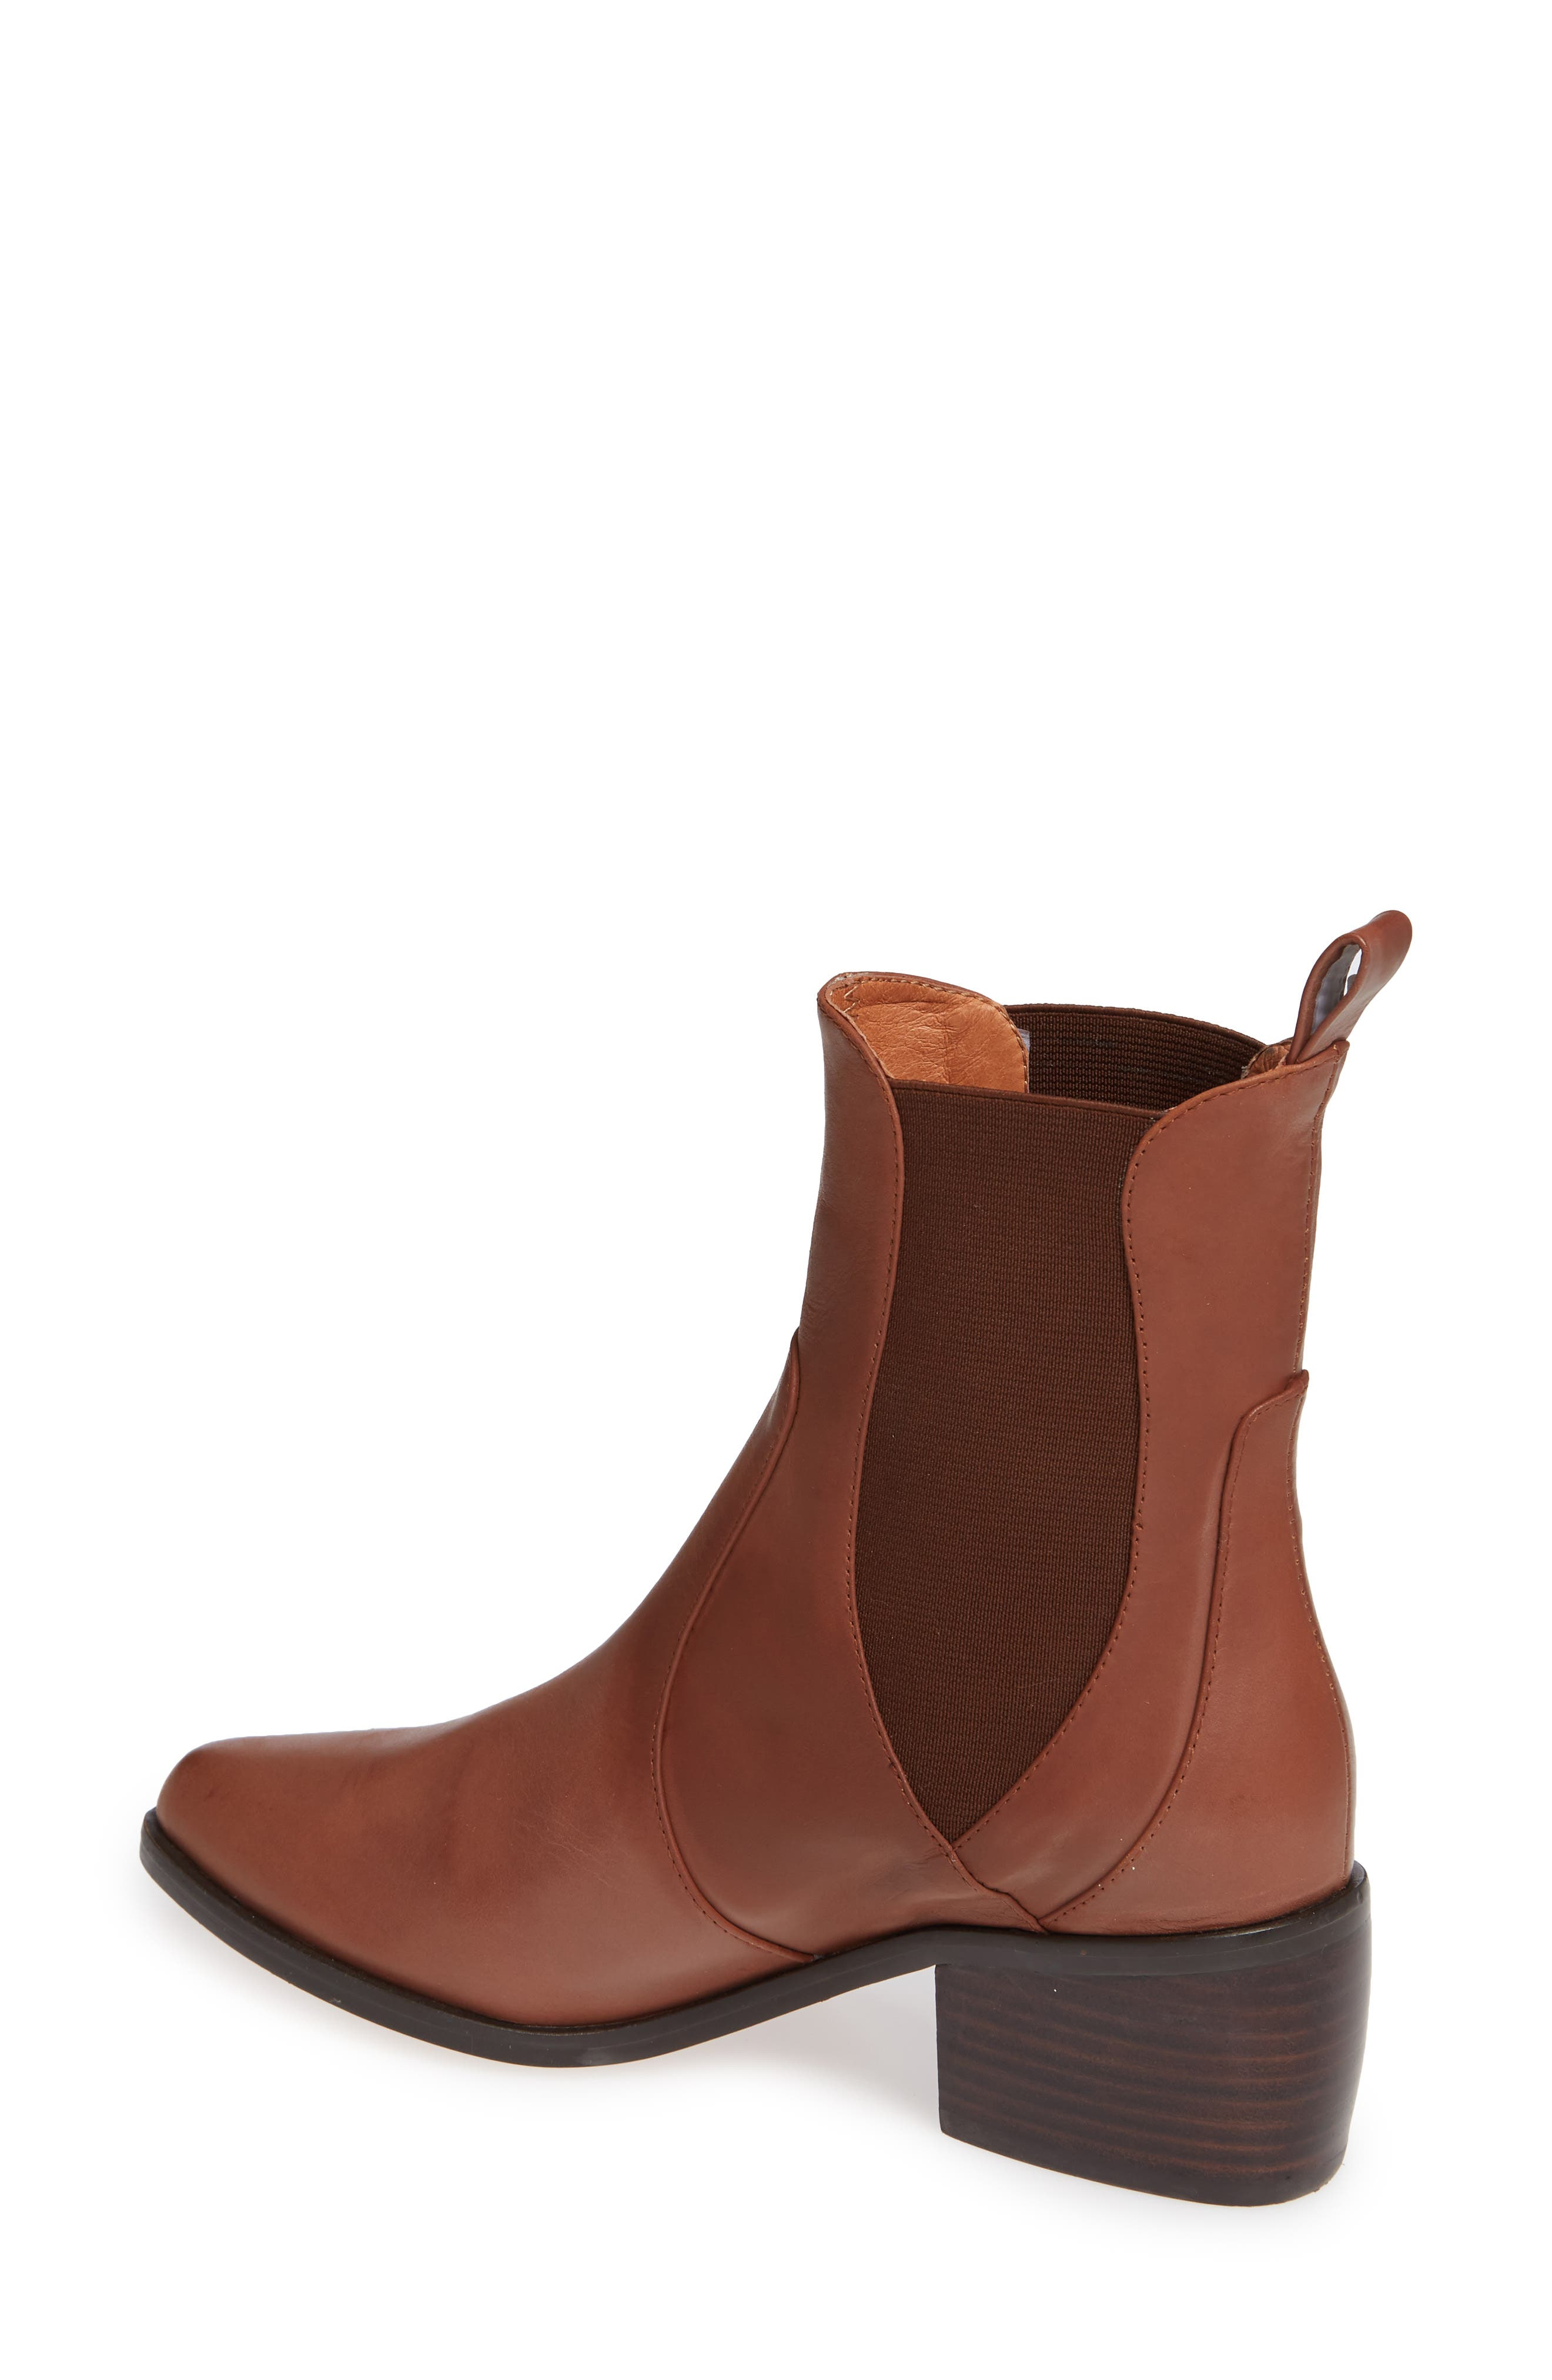 Genesis Bootie,                             Alternate thumbnail 2, color,                             TAN LEATHER